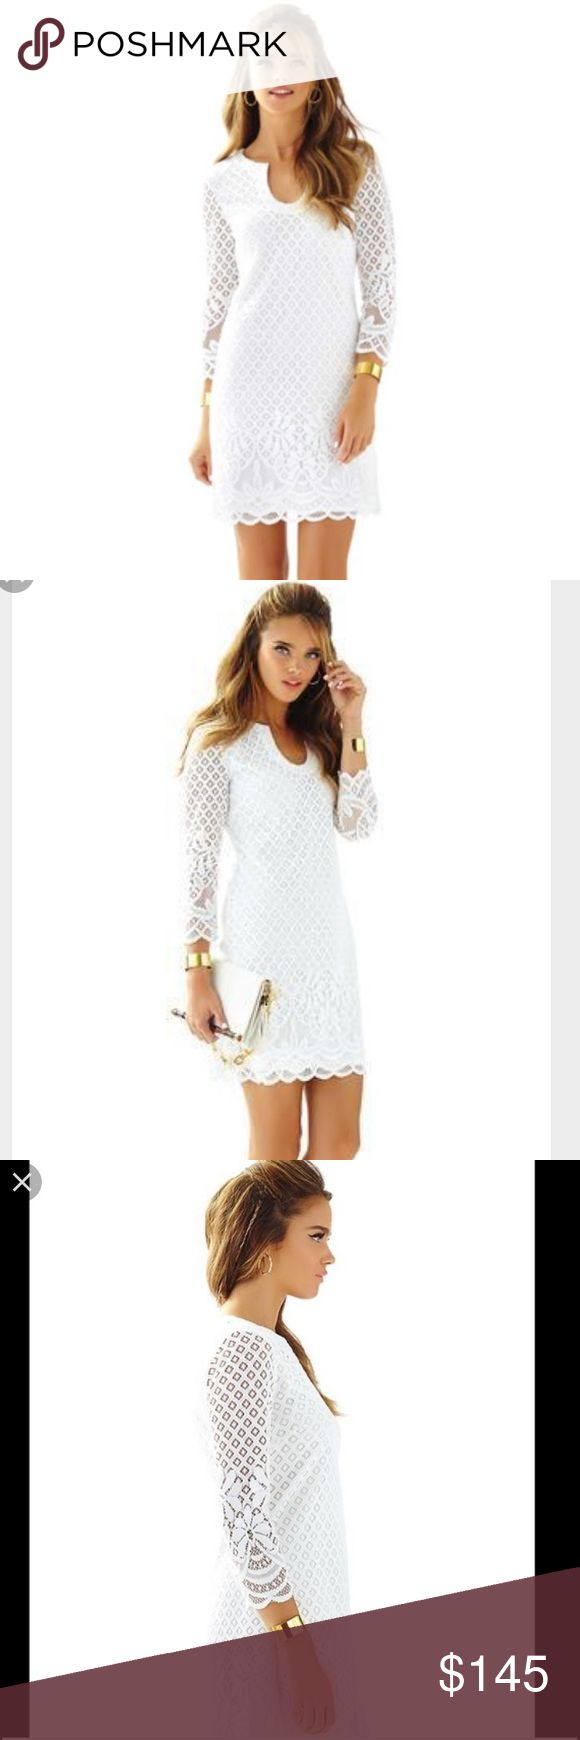 NWT Lilly Pulitzer Mara White Dress In perfect condition. Beautiful silhouette white dress perfect for summer or bridal events. I bought this from the Lilly store for my bridal shower and ended up wearing something else. Lilly Pulitzer Dresses